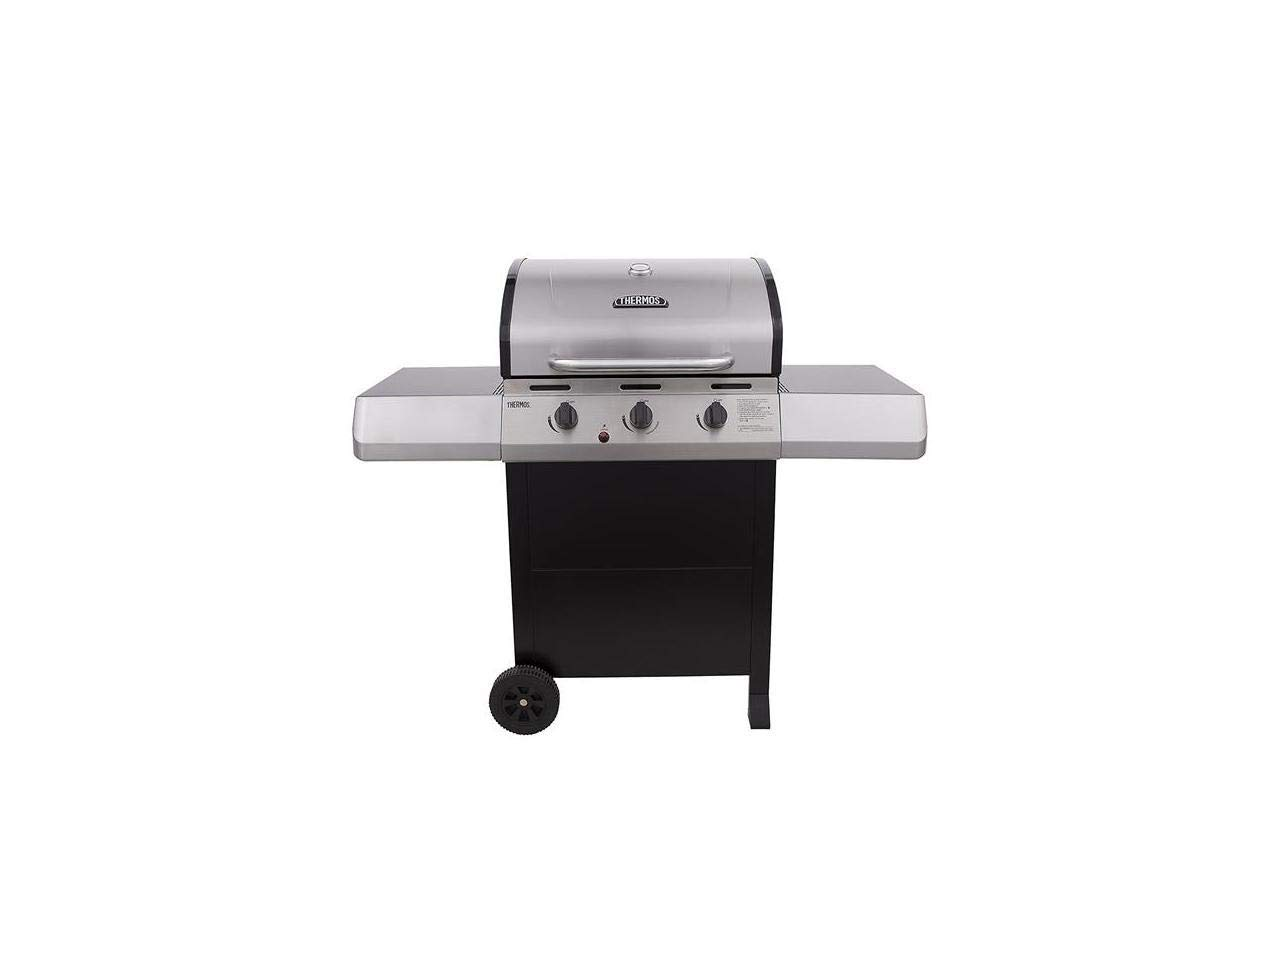 Char-Broil 461375519 3-Burner Propane Gas Grill, Silver by Char-Broil